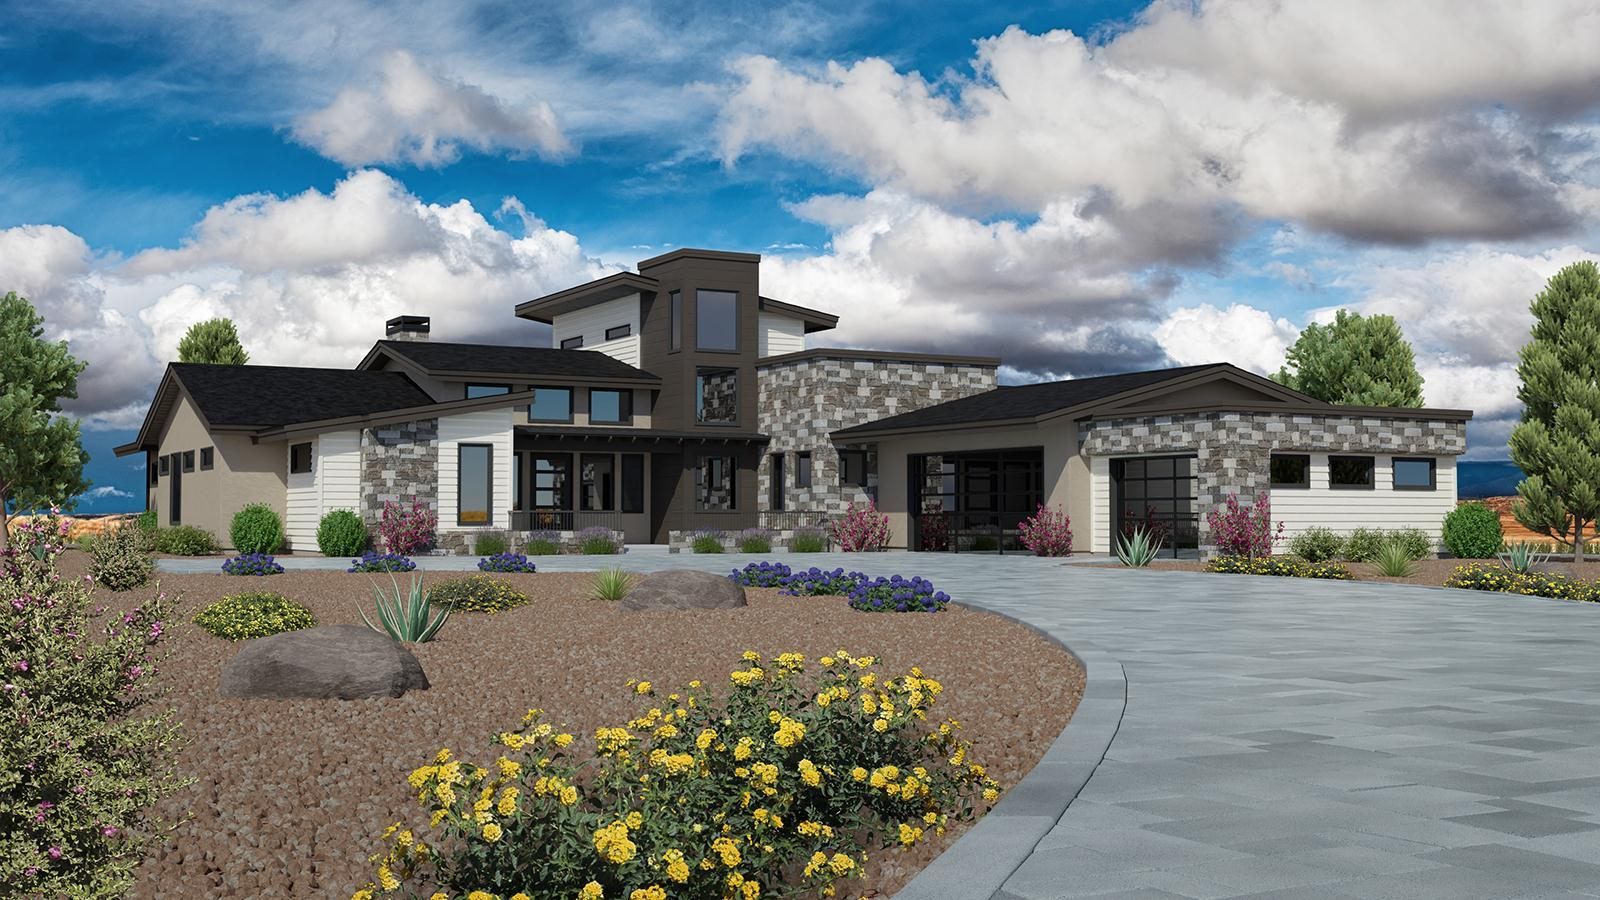 Featured Plan 3425 :Featured Plan 3425